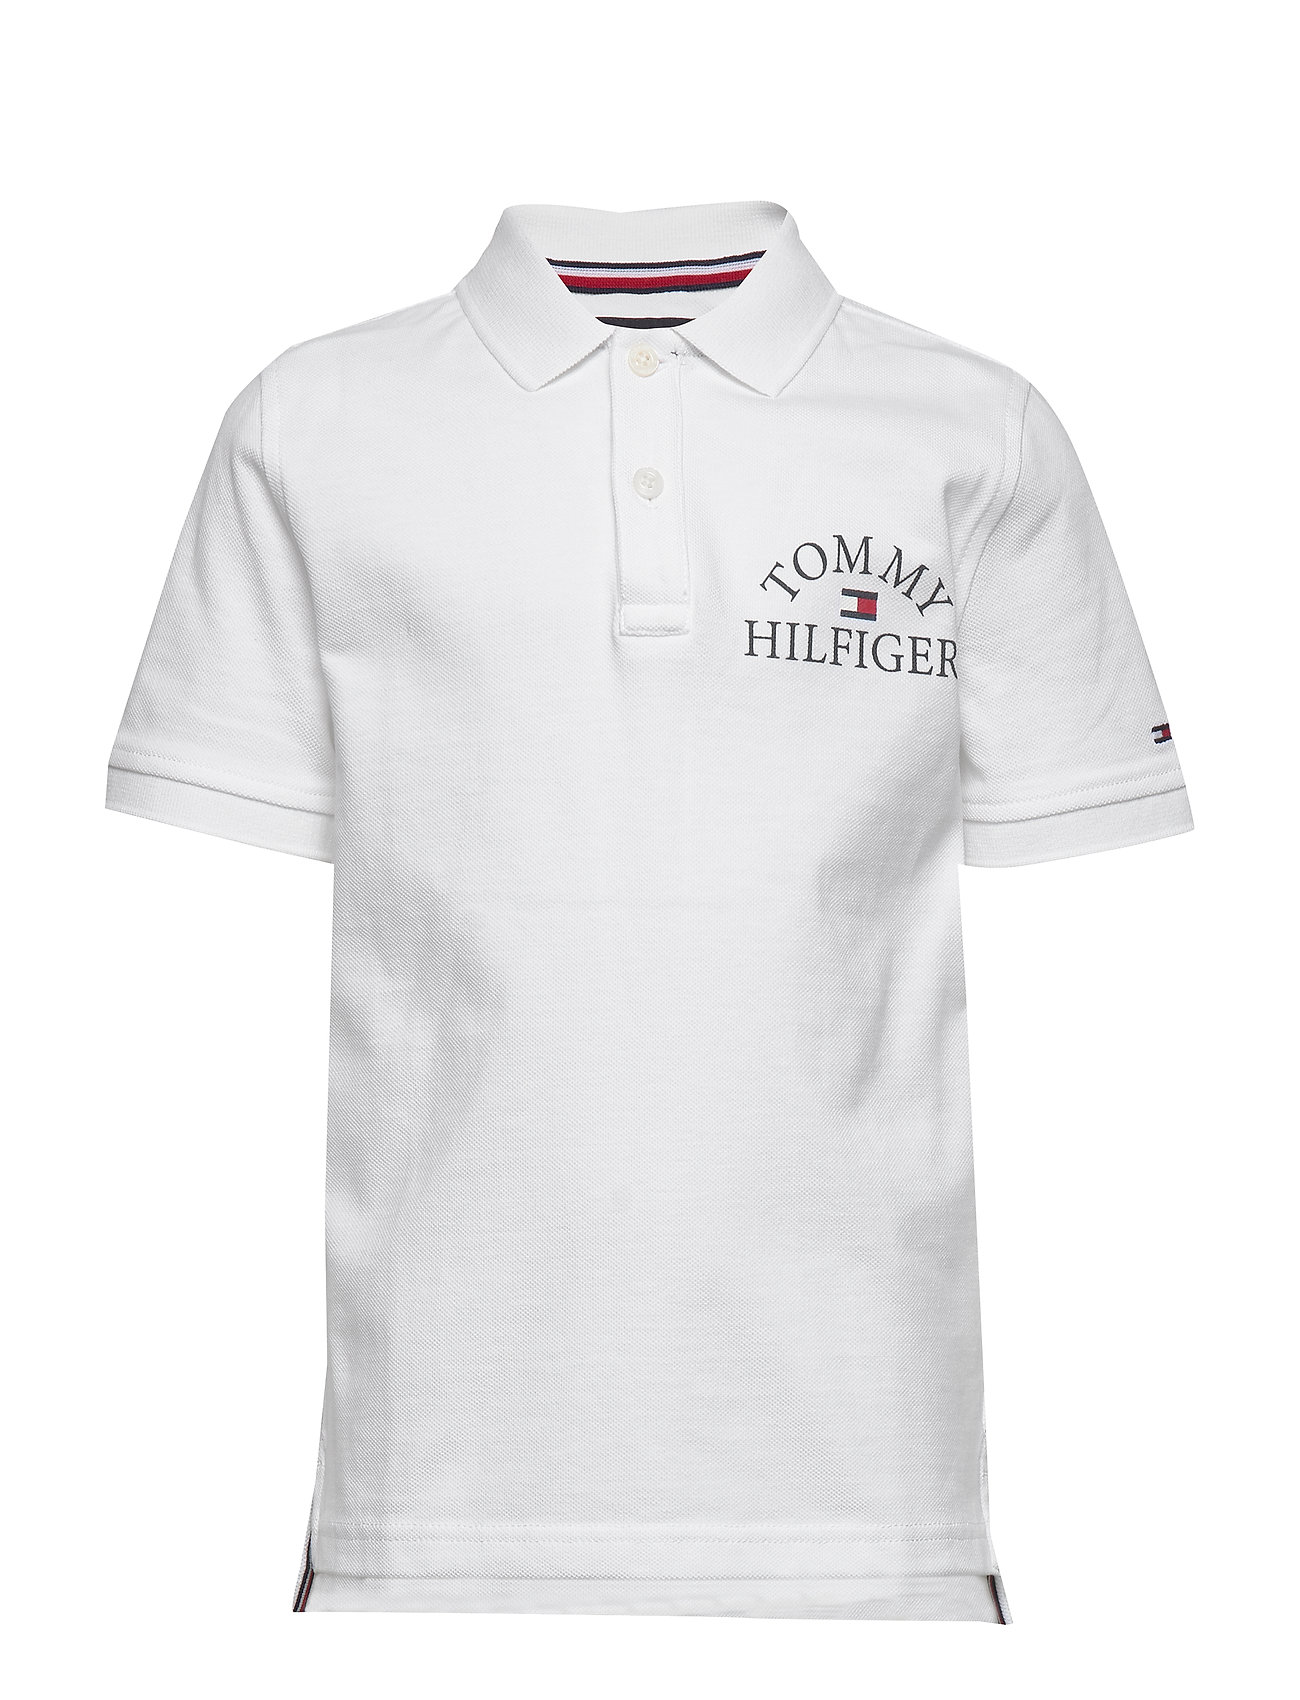 Tommy Hilfiger ESSENTIAL LOGO CHEST POLO S/S - WHITE 658-170